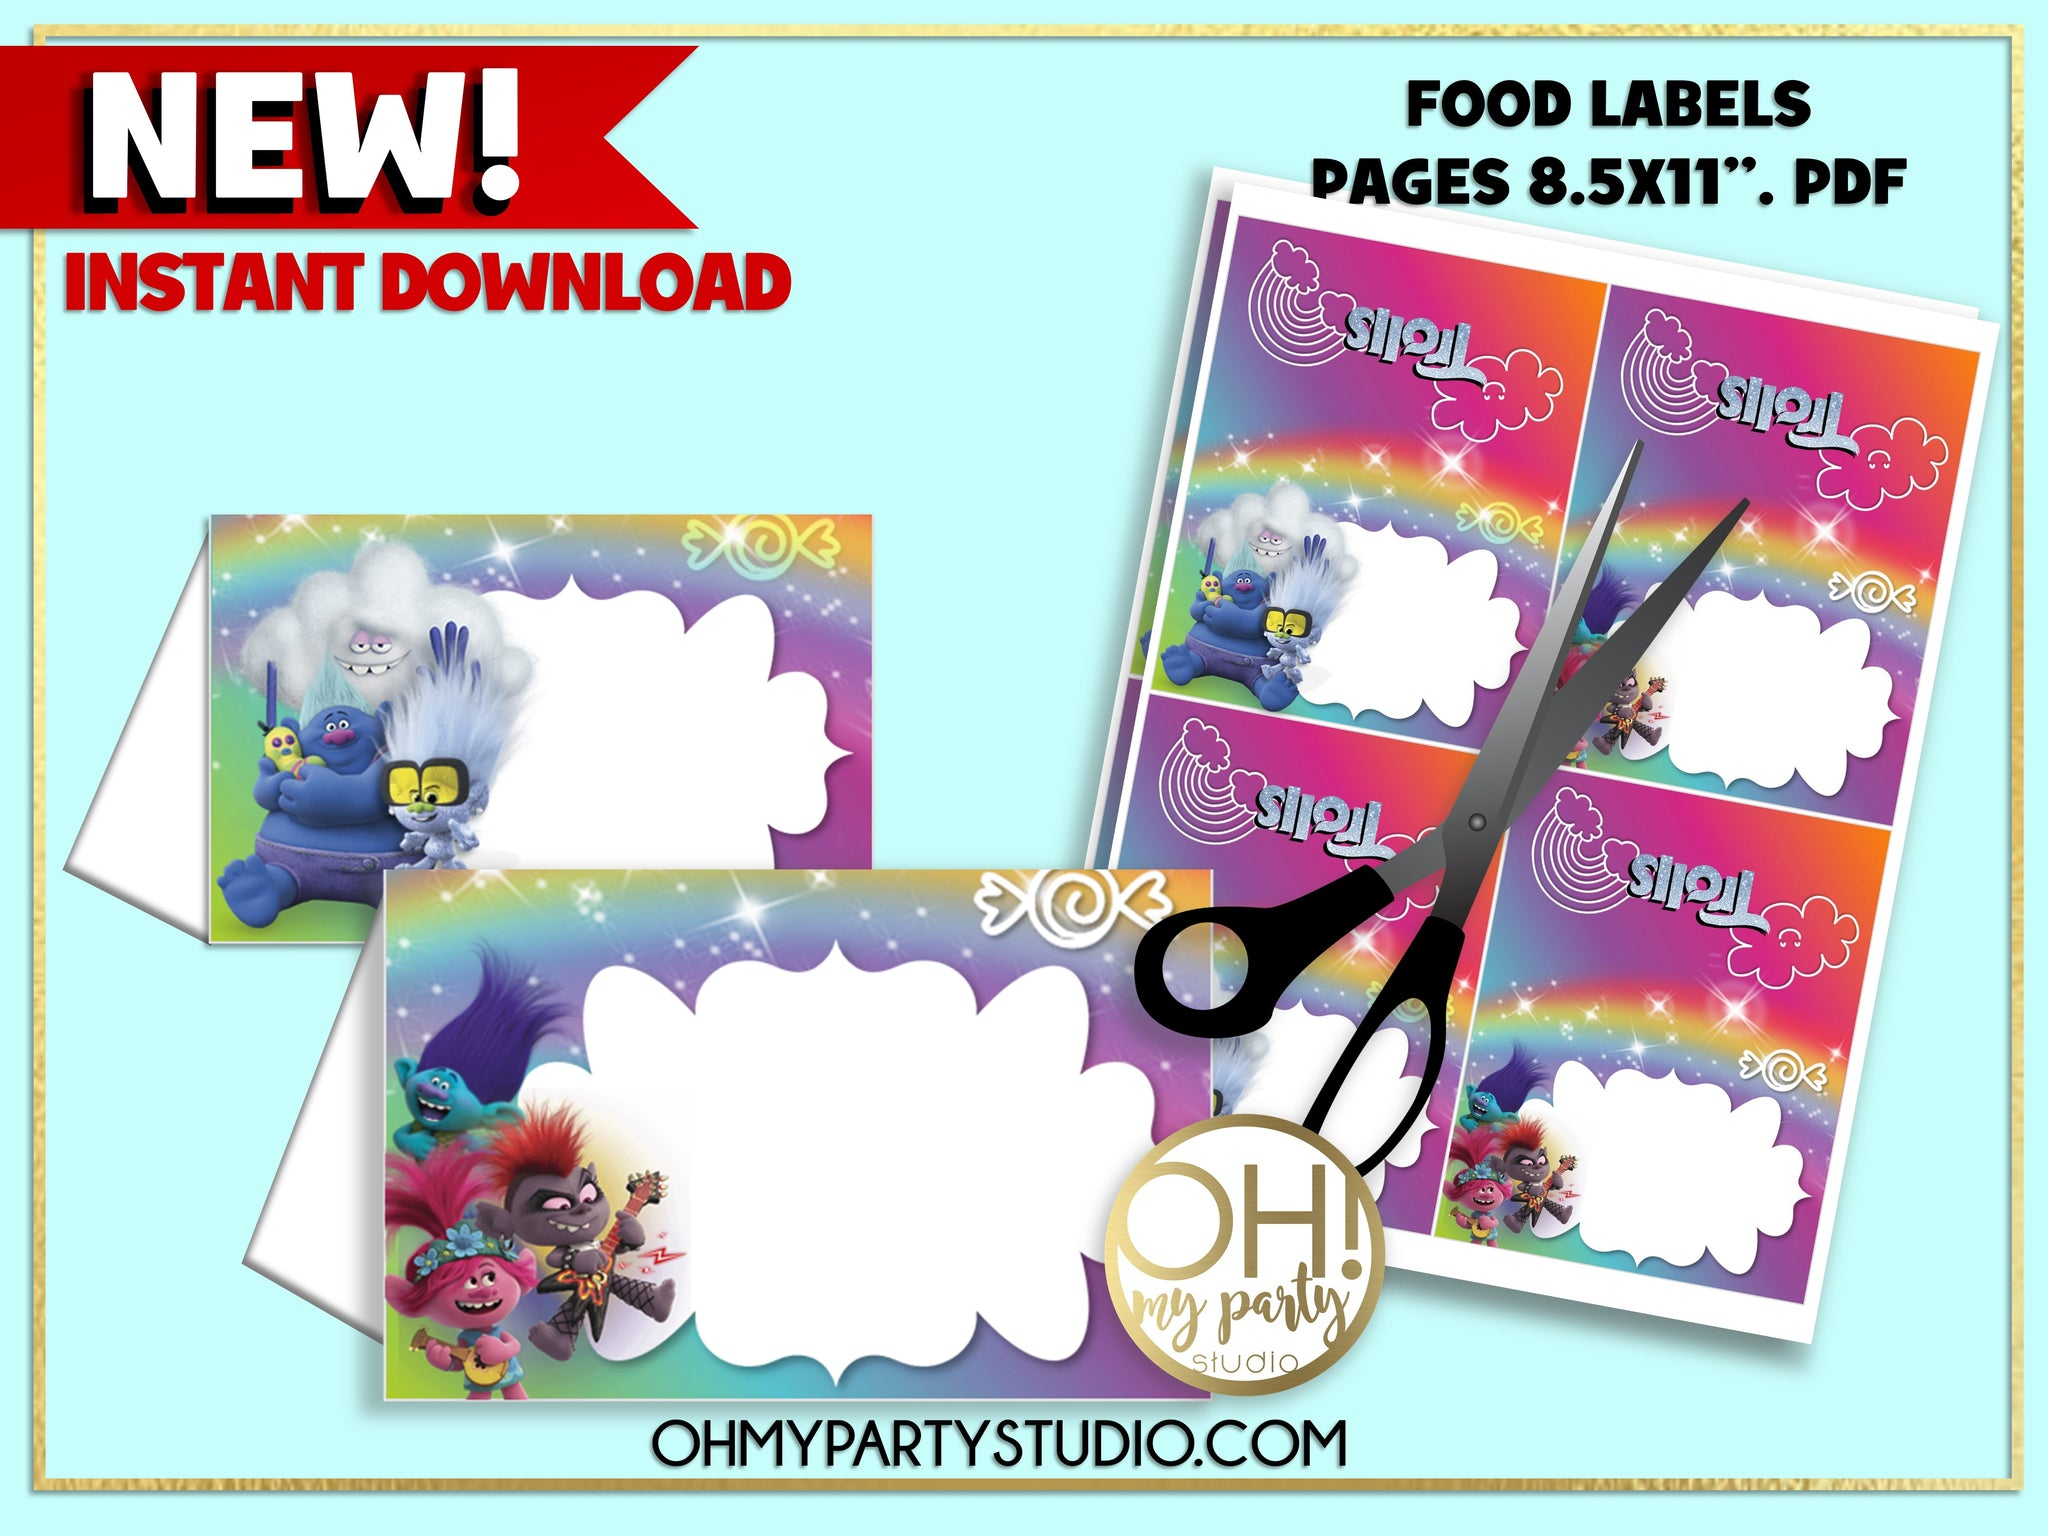 TROLLS 2 FOOD LABELS. TROLLS 2 PARTY PRINTABLES, TROLLS 2 INSTANT DOWNLOAD, TROLLS 2 PARTY SUPPLIES, TROLLS 2 PARTY, TROLLS 2 BIRTHDAY, TROLLS 2 PARTY IDEAS, TROLLS WORLD TOUR PARTY, TROLLS WORLS TOUR BIRTHDAY, TROLLS WORLD TOUR PARTY PRINTABLES, TROLLS WORLD TOUR PARTY SUPPLIES, TROLLS WORLD TOUR PARTY IDEAS, TROLLS WORLD TOUR FOOD LABELS